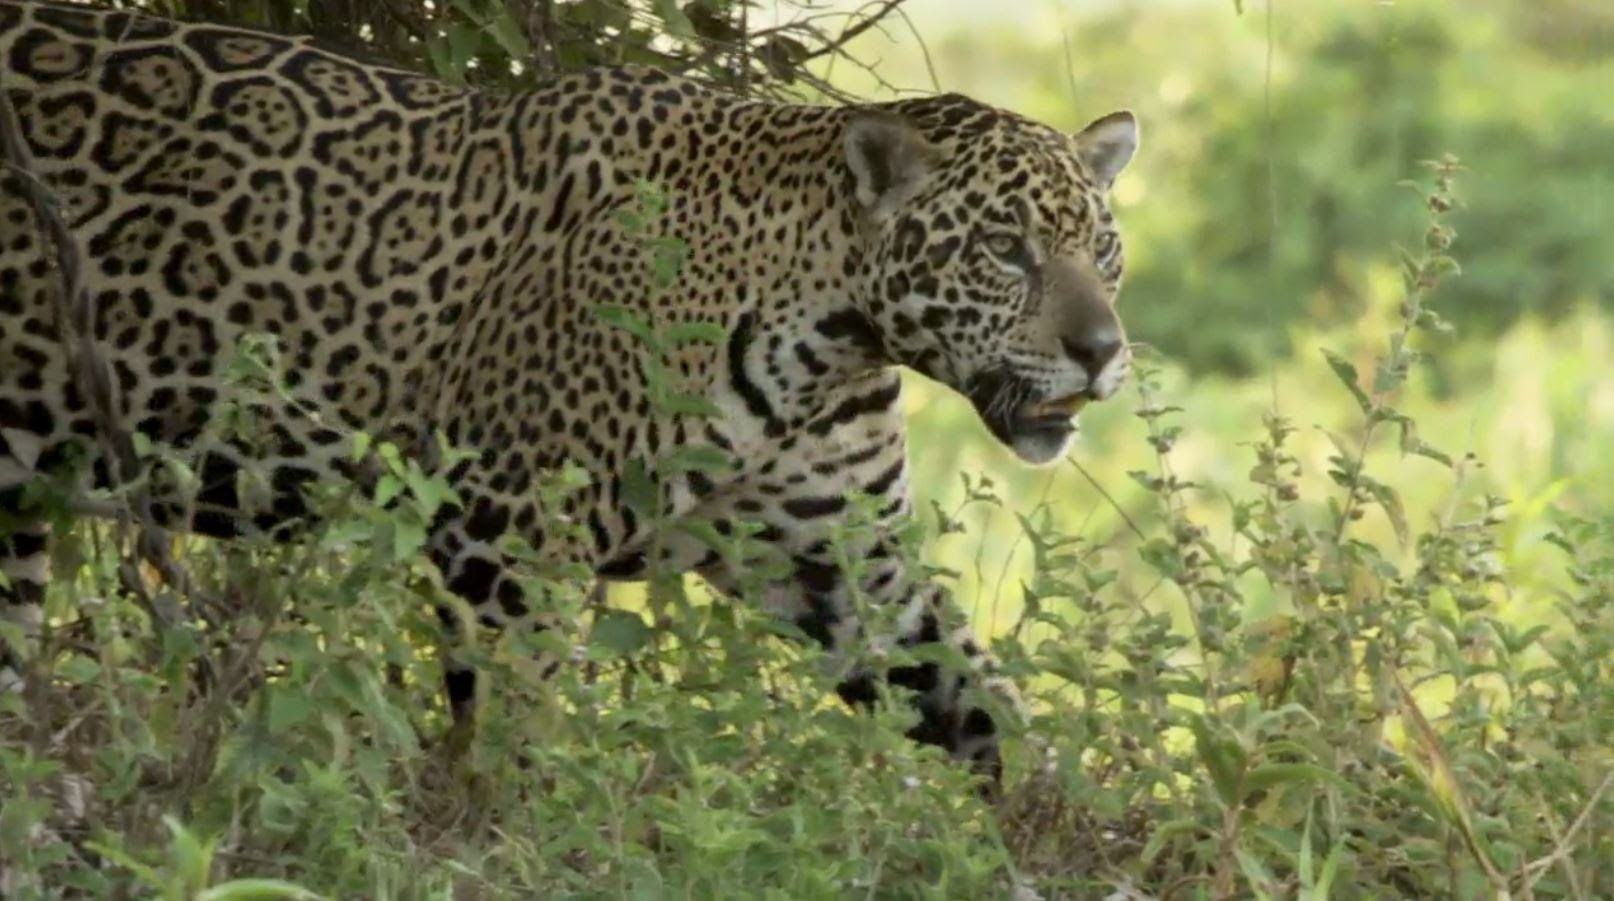 Can Dr Alan Rabinowitz Save Jaguars Before It S Too Late